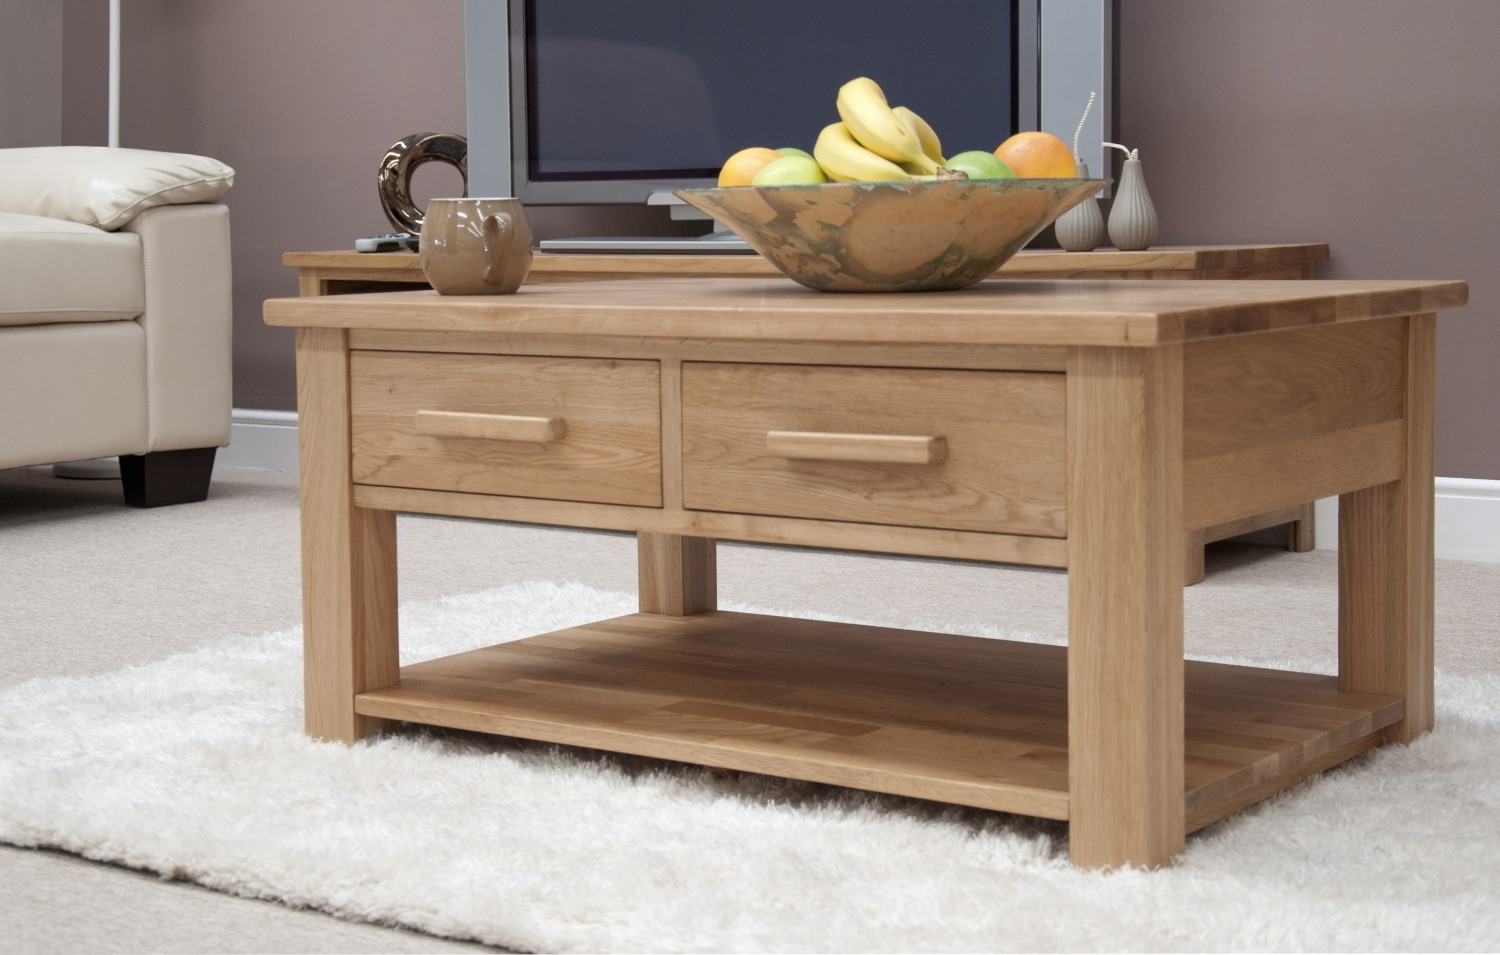 eton solid oak living room lounge furniture storage coffee table with drawers ebay. Black Bedroom Furniture Sets. Home Design Ideas